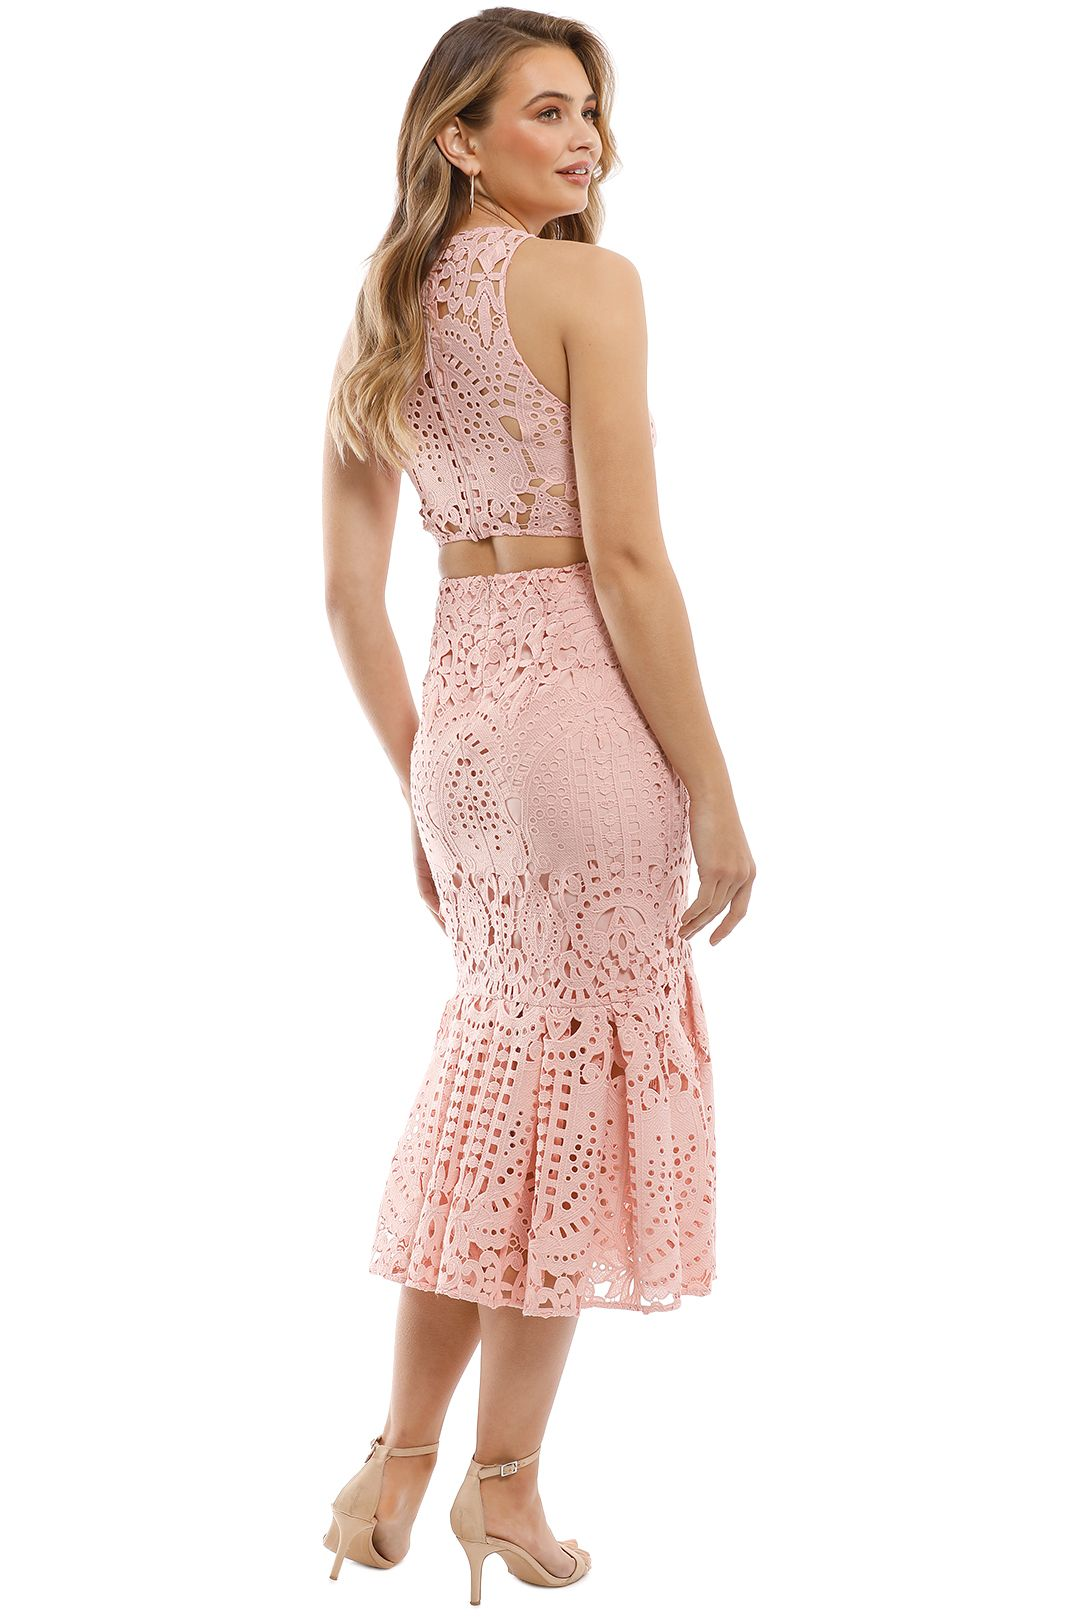 Lover - Harmony Cut Out Midi Dress - Sunset - Back